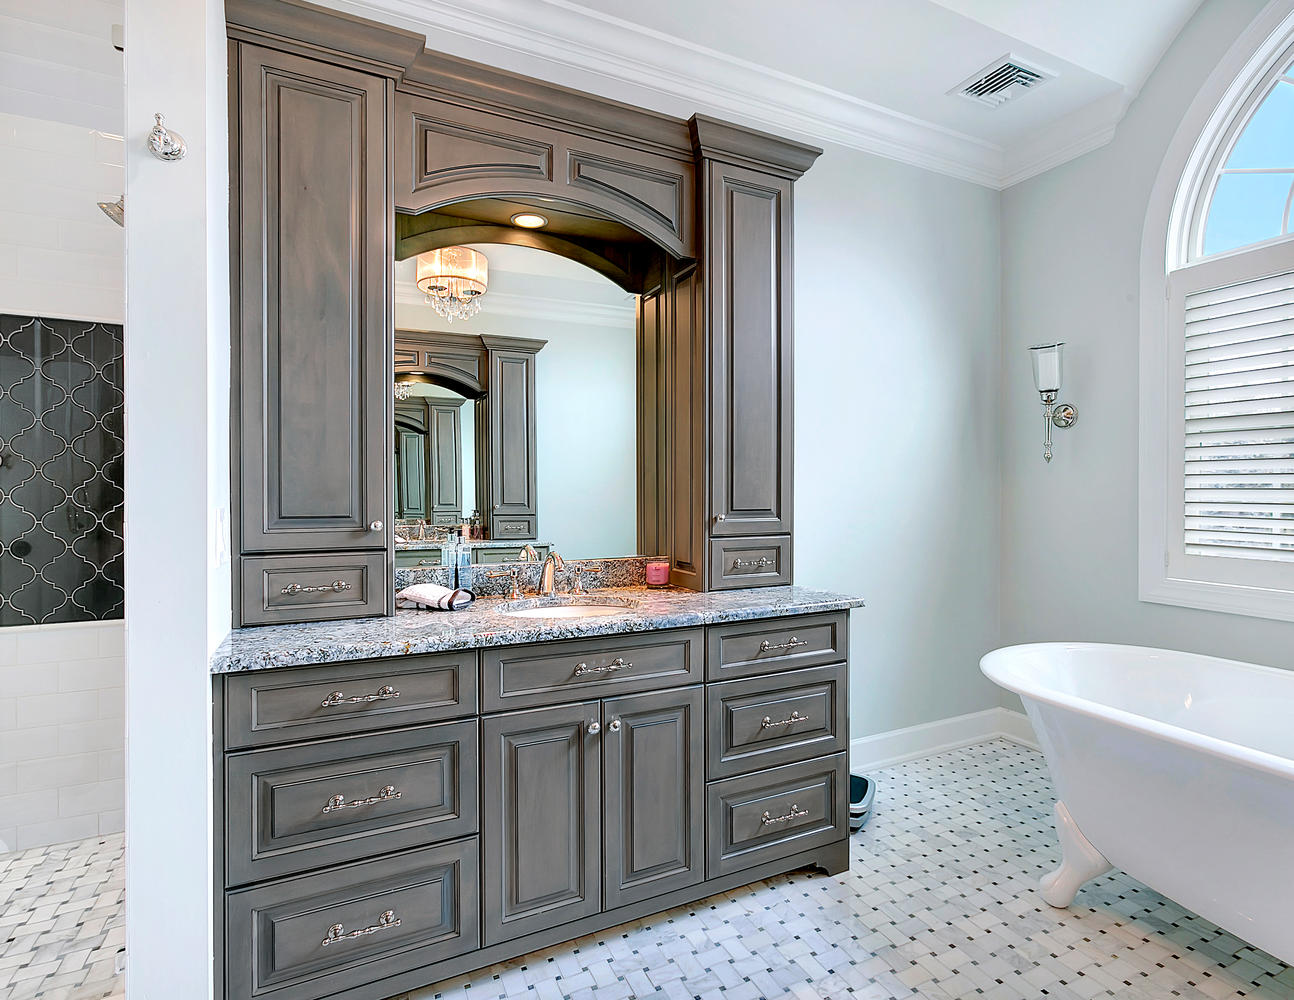 Custom Vanity  Bathroom Cabinetry  Design Line Kitchens in Sea Girt NJ